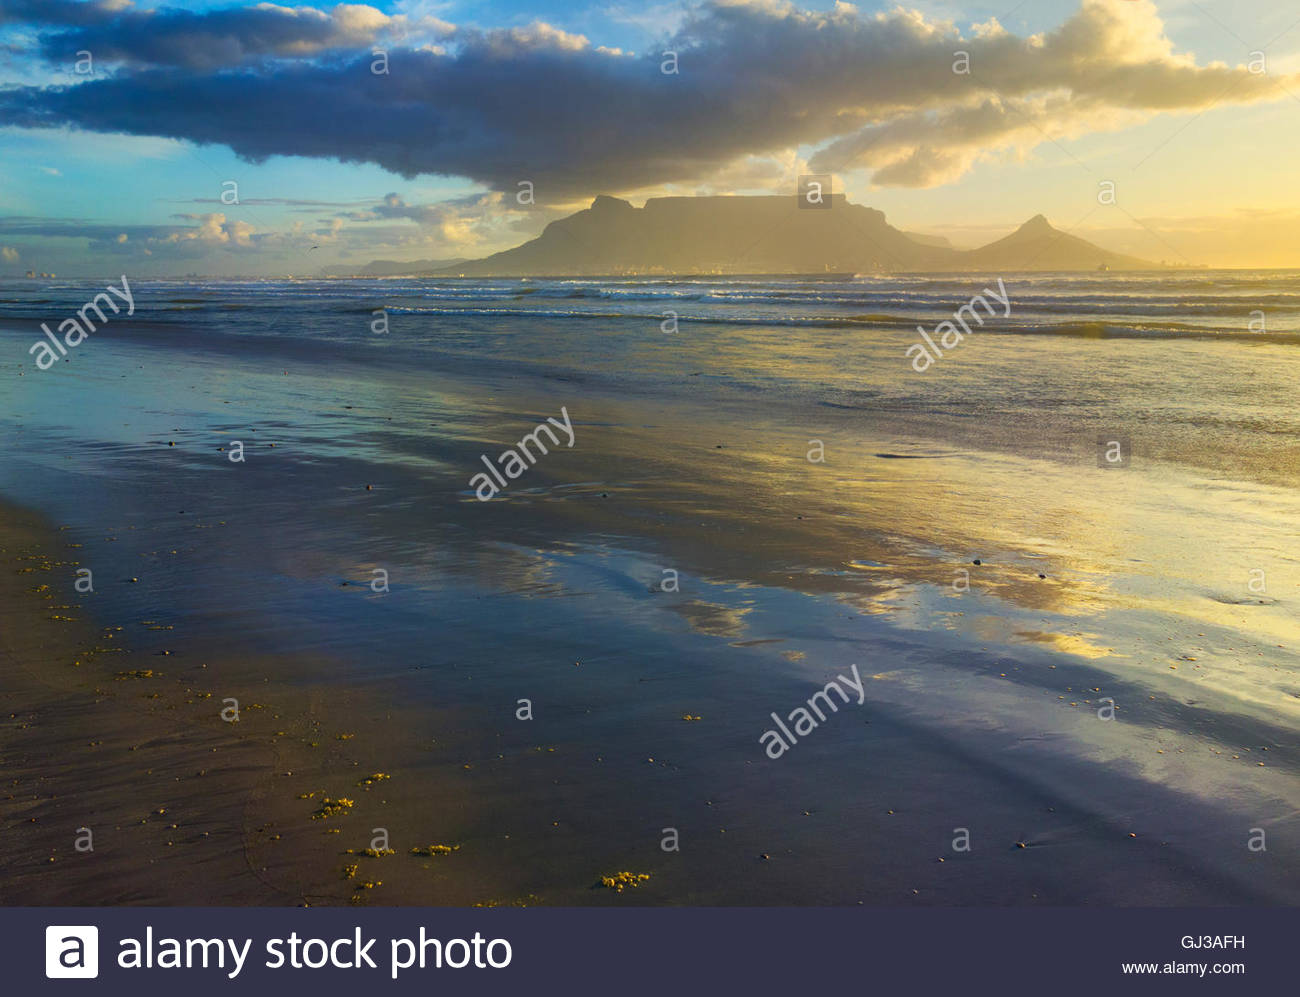 View of table mountain from Bloubergstrand beach, Cape Town, South Africa - Stock Image